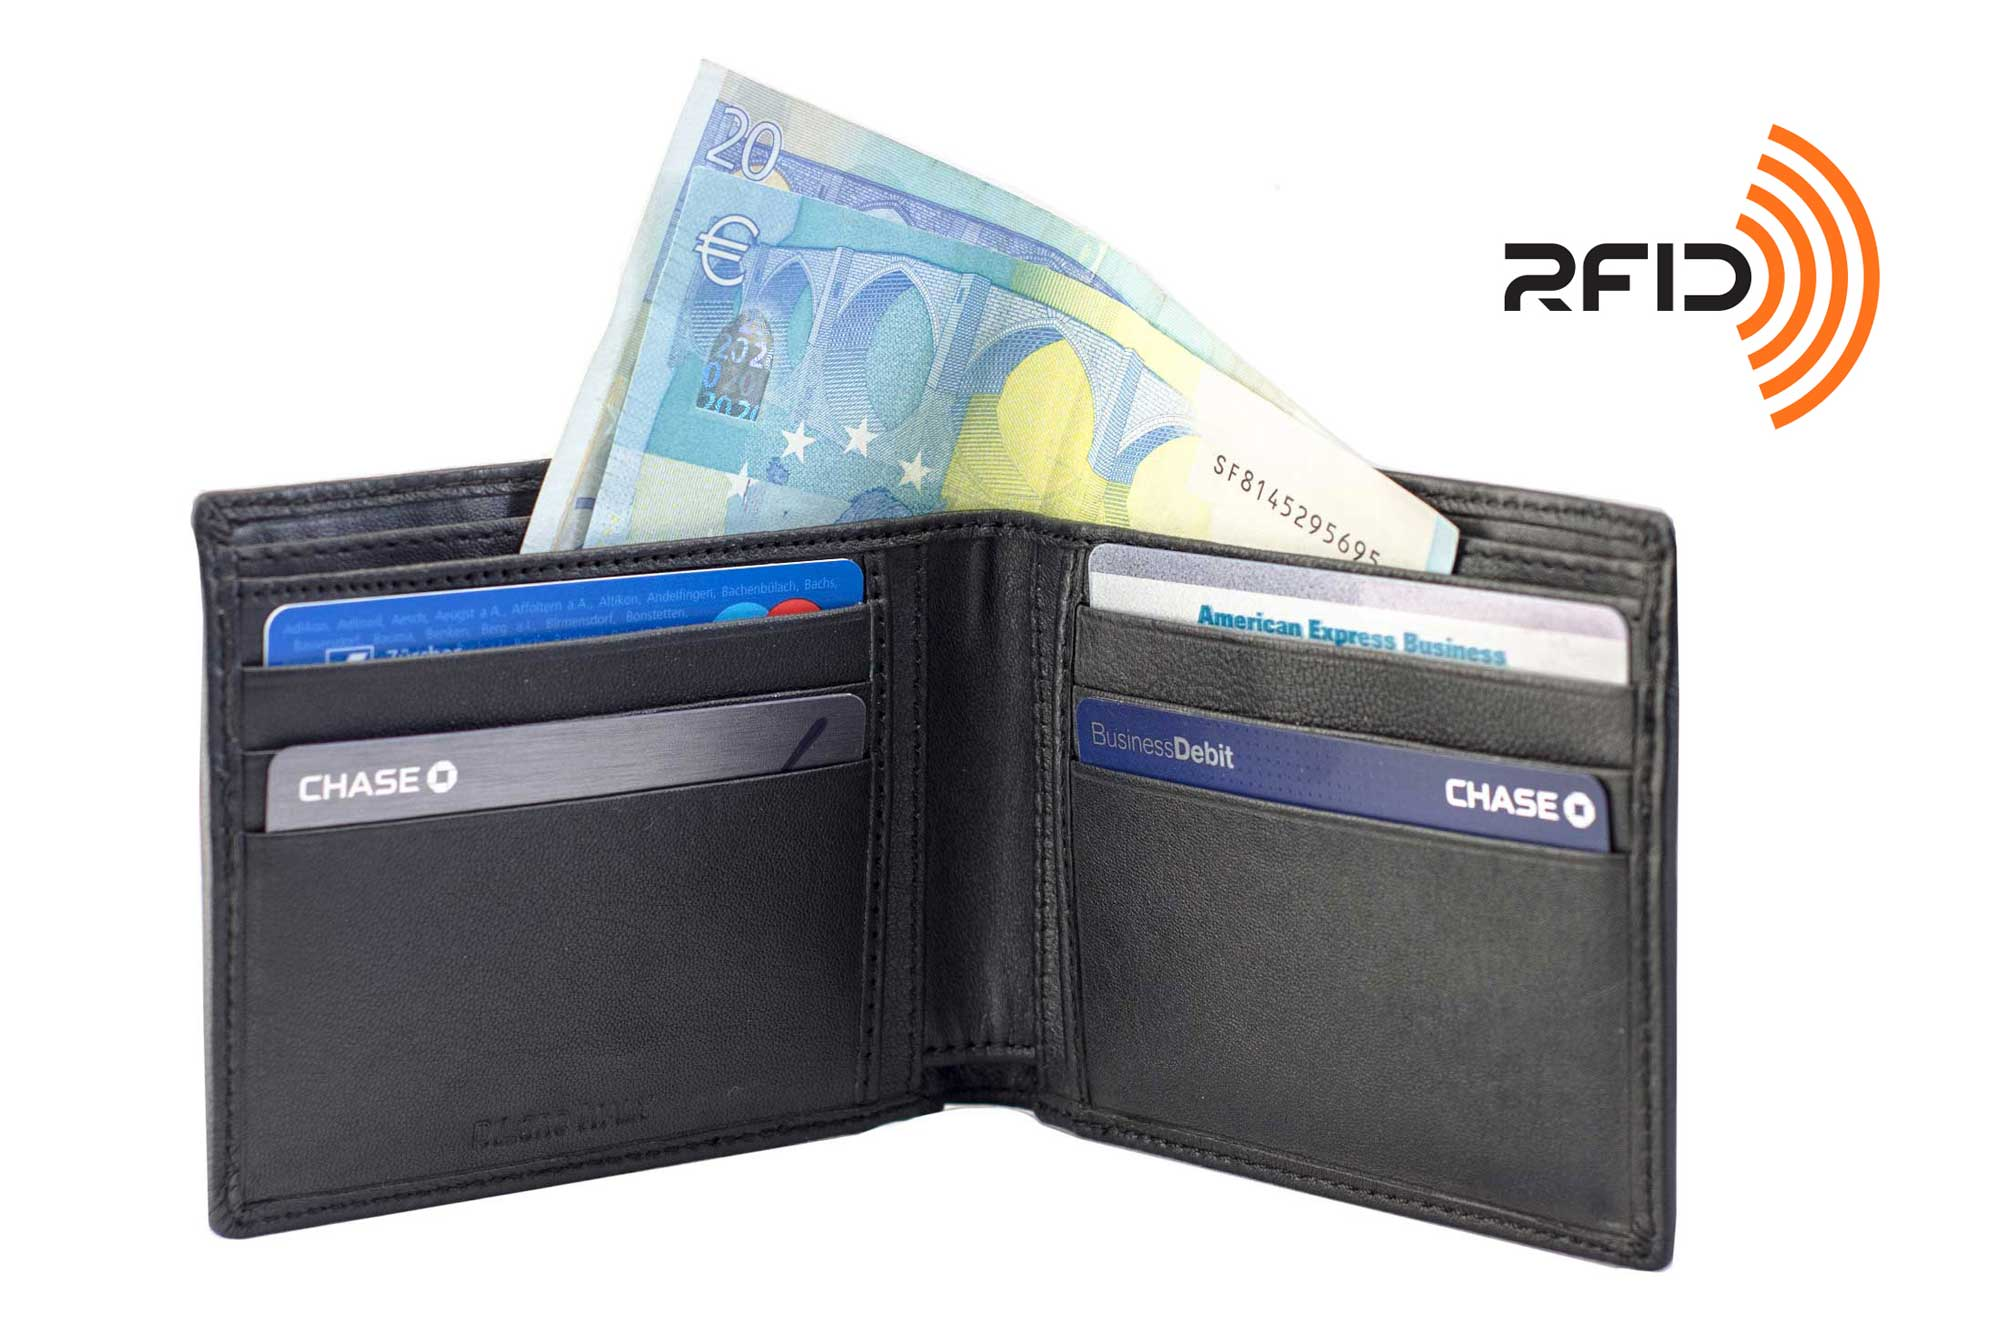 DiLoro Slim Bifold Leather Wallet with Back Slip Pocket, RFID Protection, Double Billfold